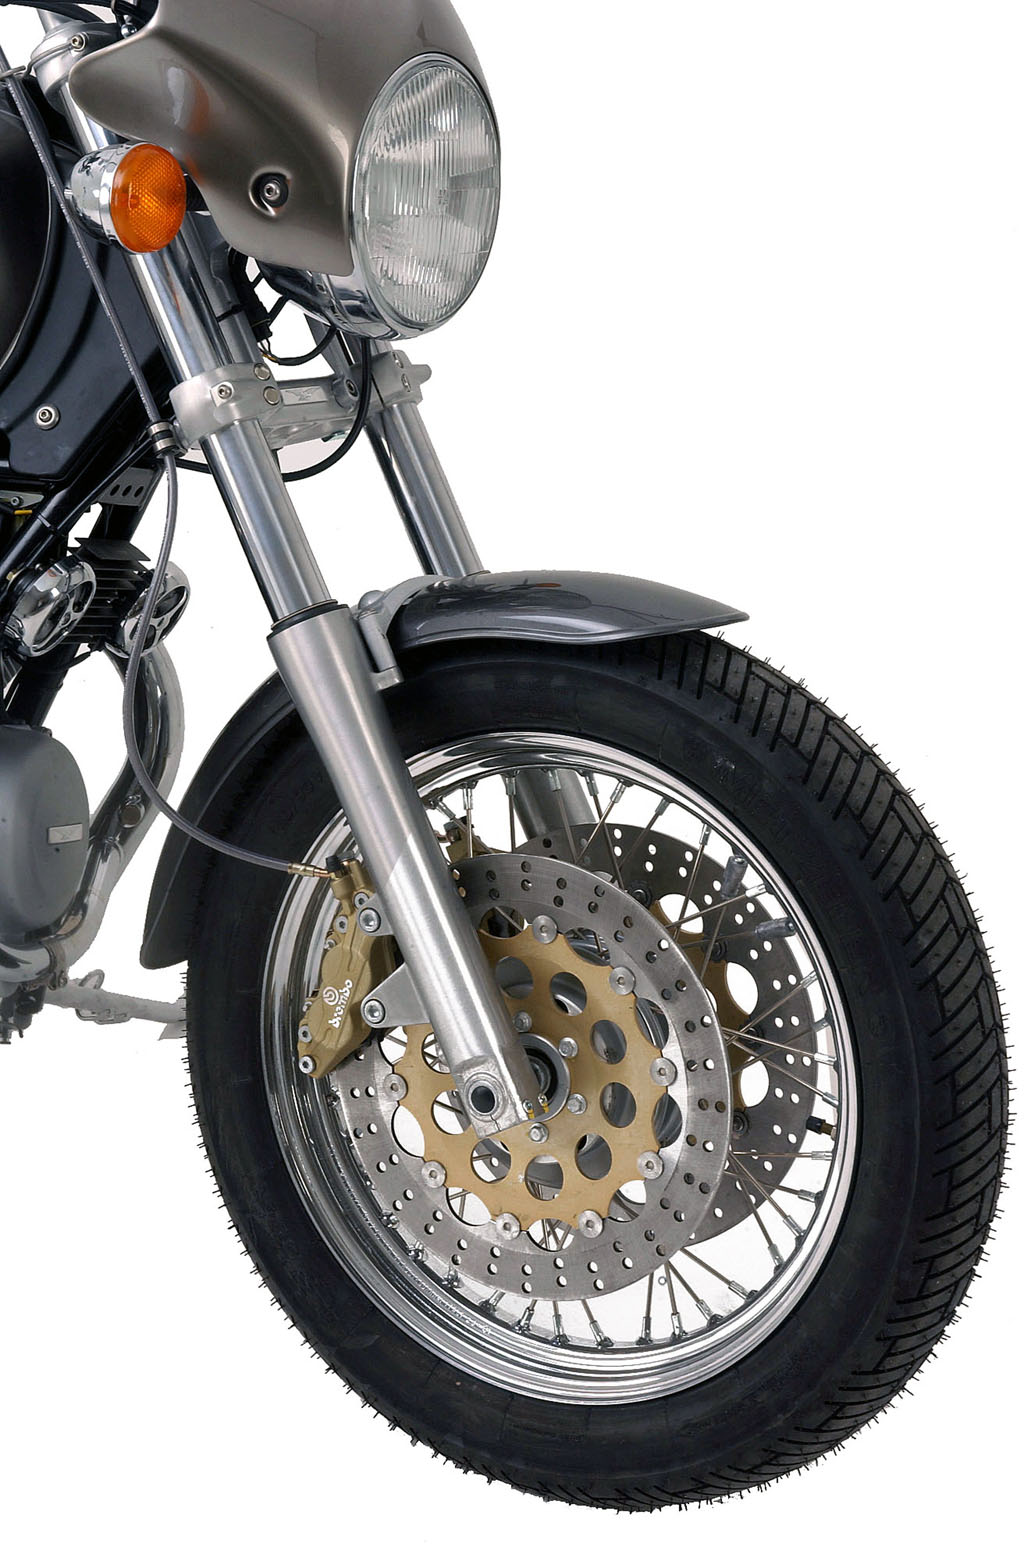 Moto Guzzi California Titanium (2003)Download full-size tif image